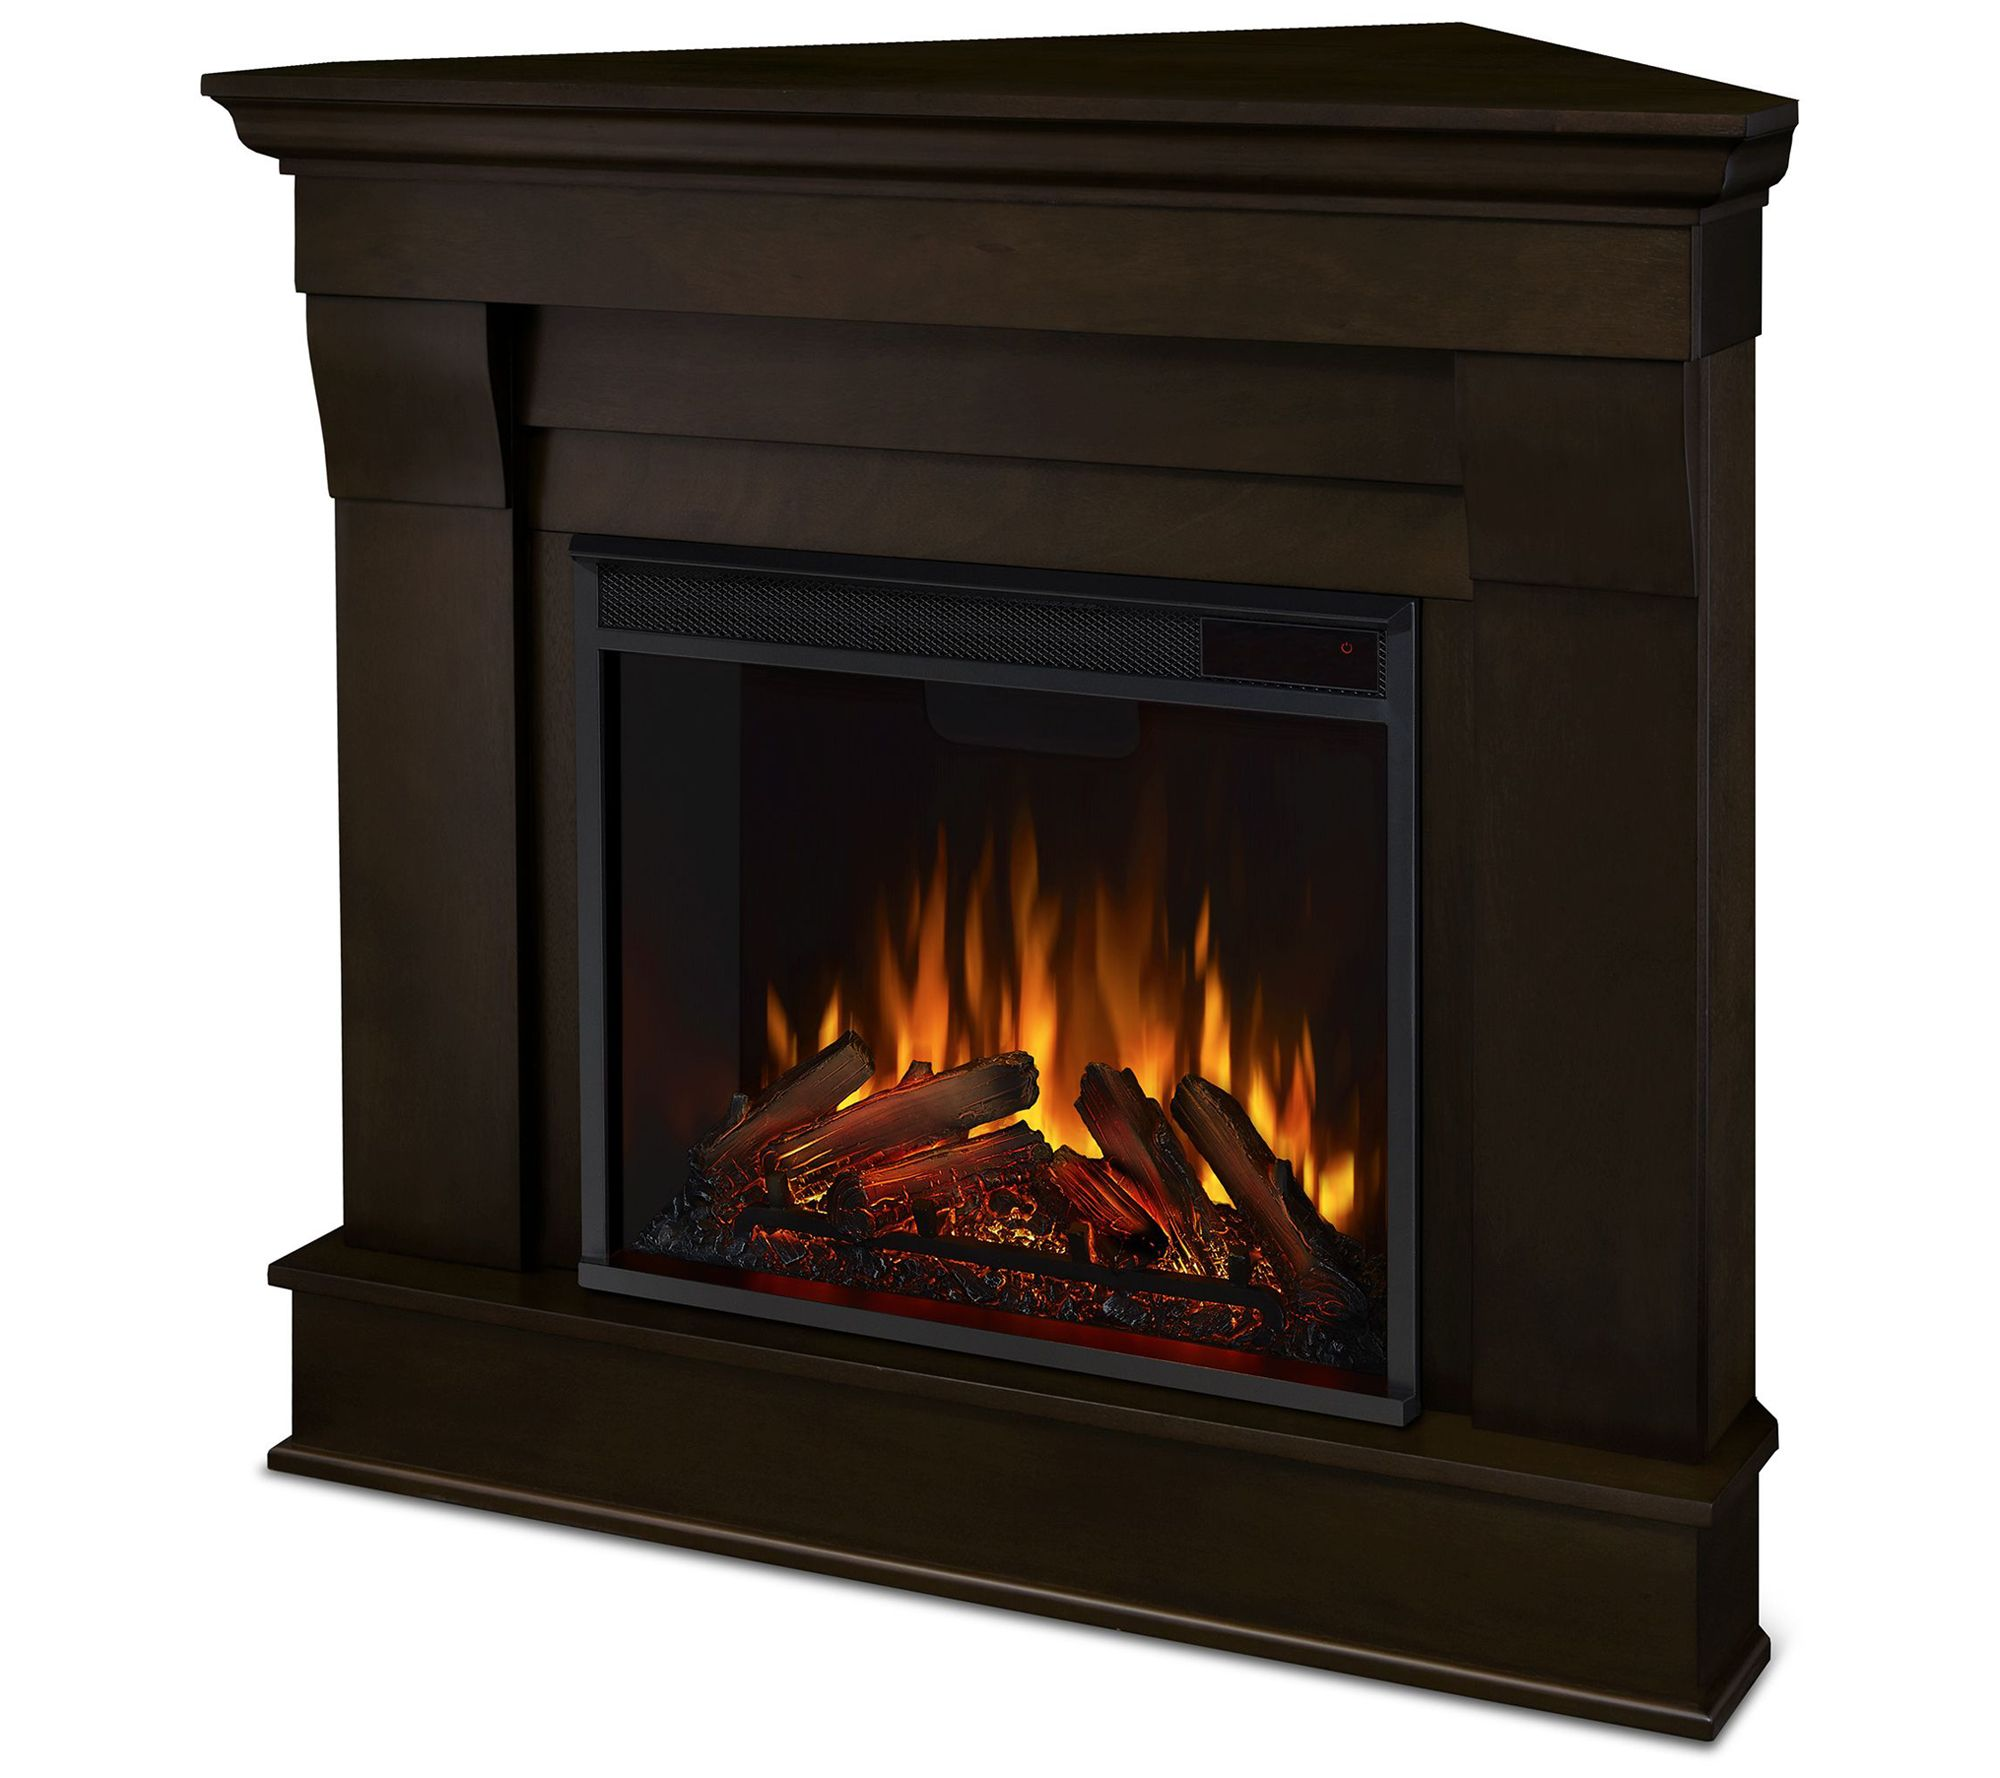 Fireplaces — Heating & Cooling — For the Home — QVC.com